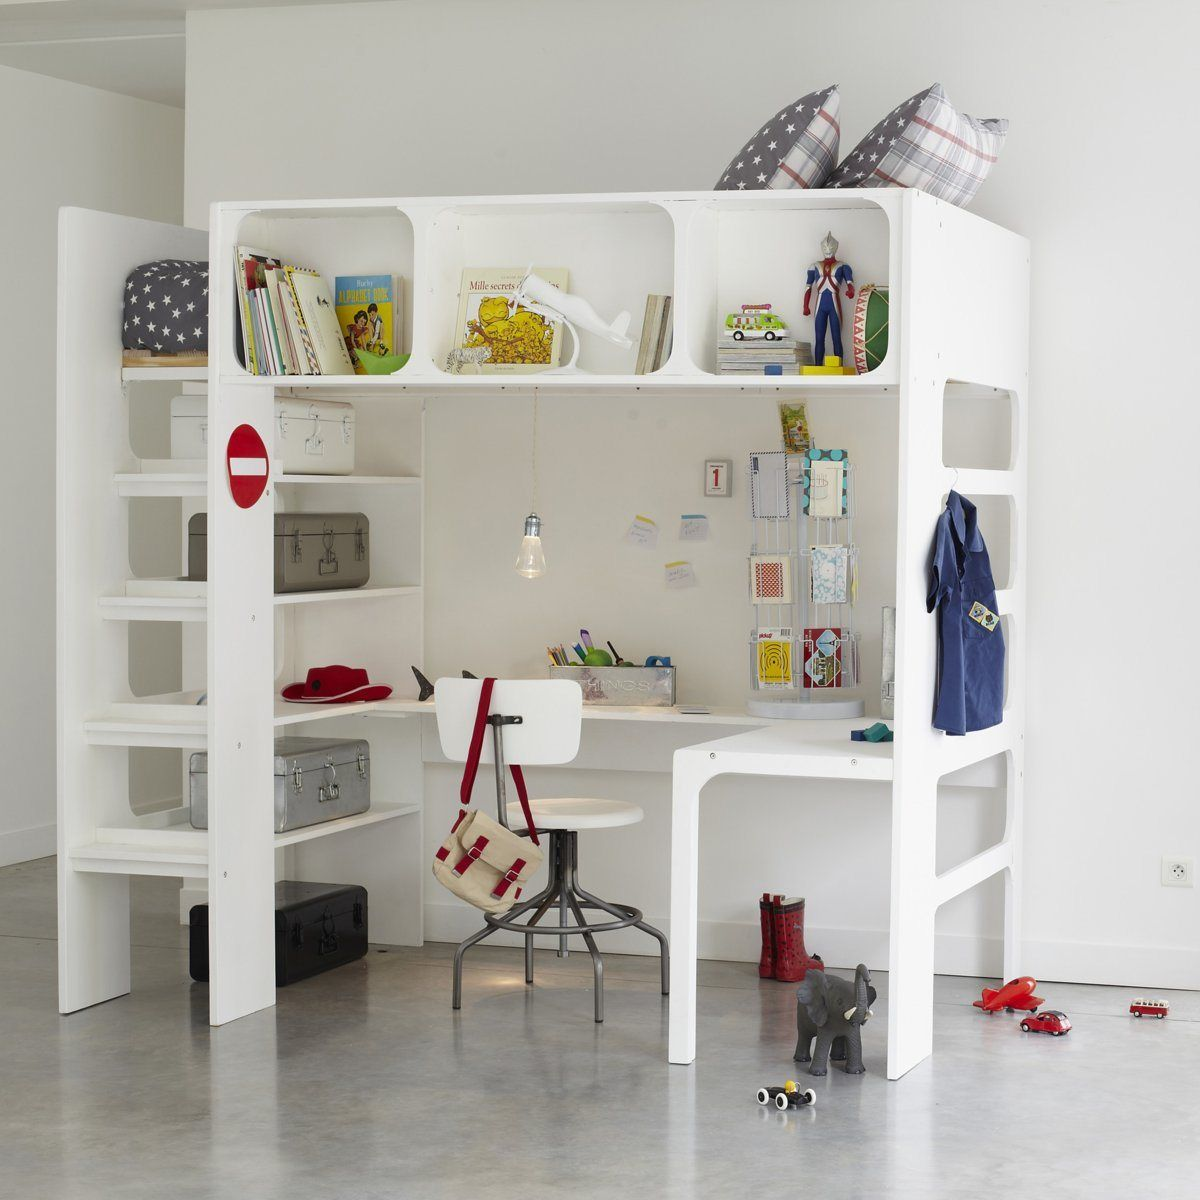 La redoute lit bureau et commode gain de place bcn amenagement int - Lit la redoute 2 places ...